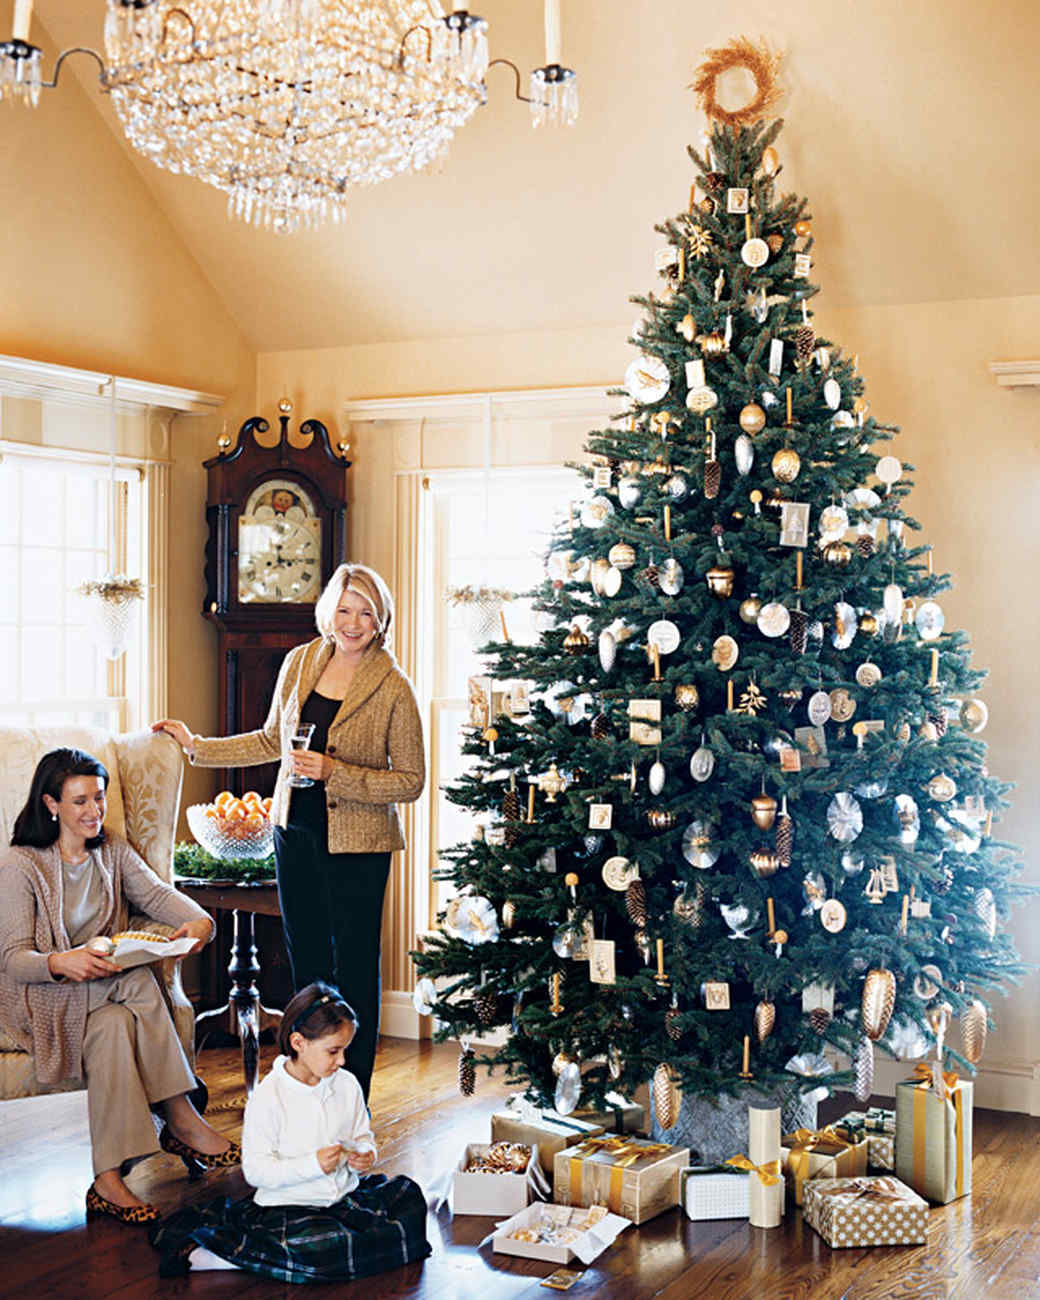 Homes Decorated For Christmas On The Inside: Martha's Holiday Decorating Ideas